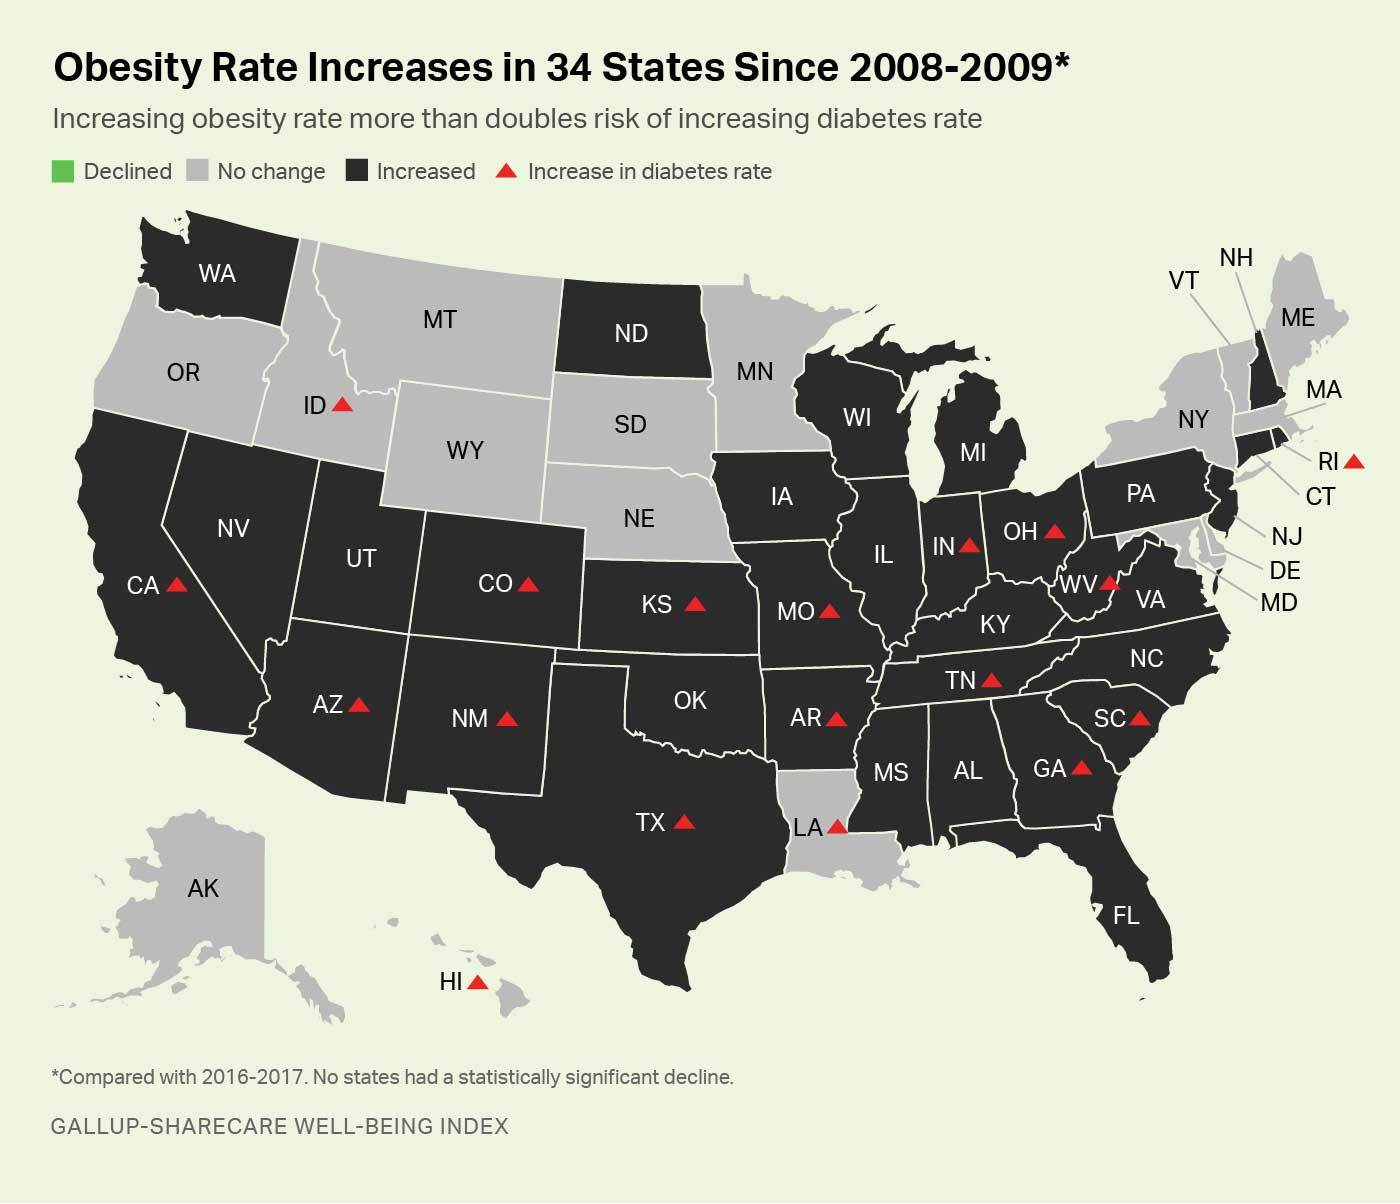 Map. Obesity rates increased in 34 states since 2008-2009; these rates have not declined in any U.S. state.